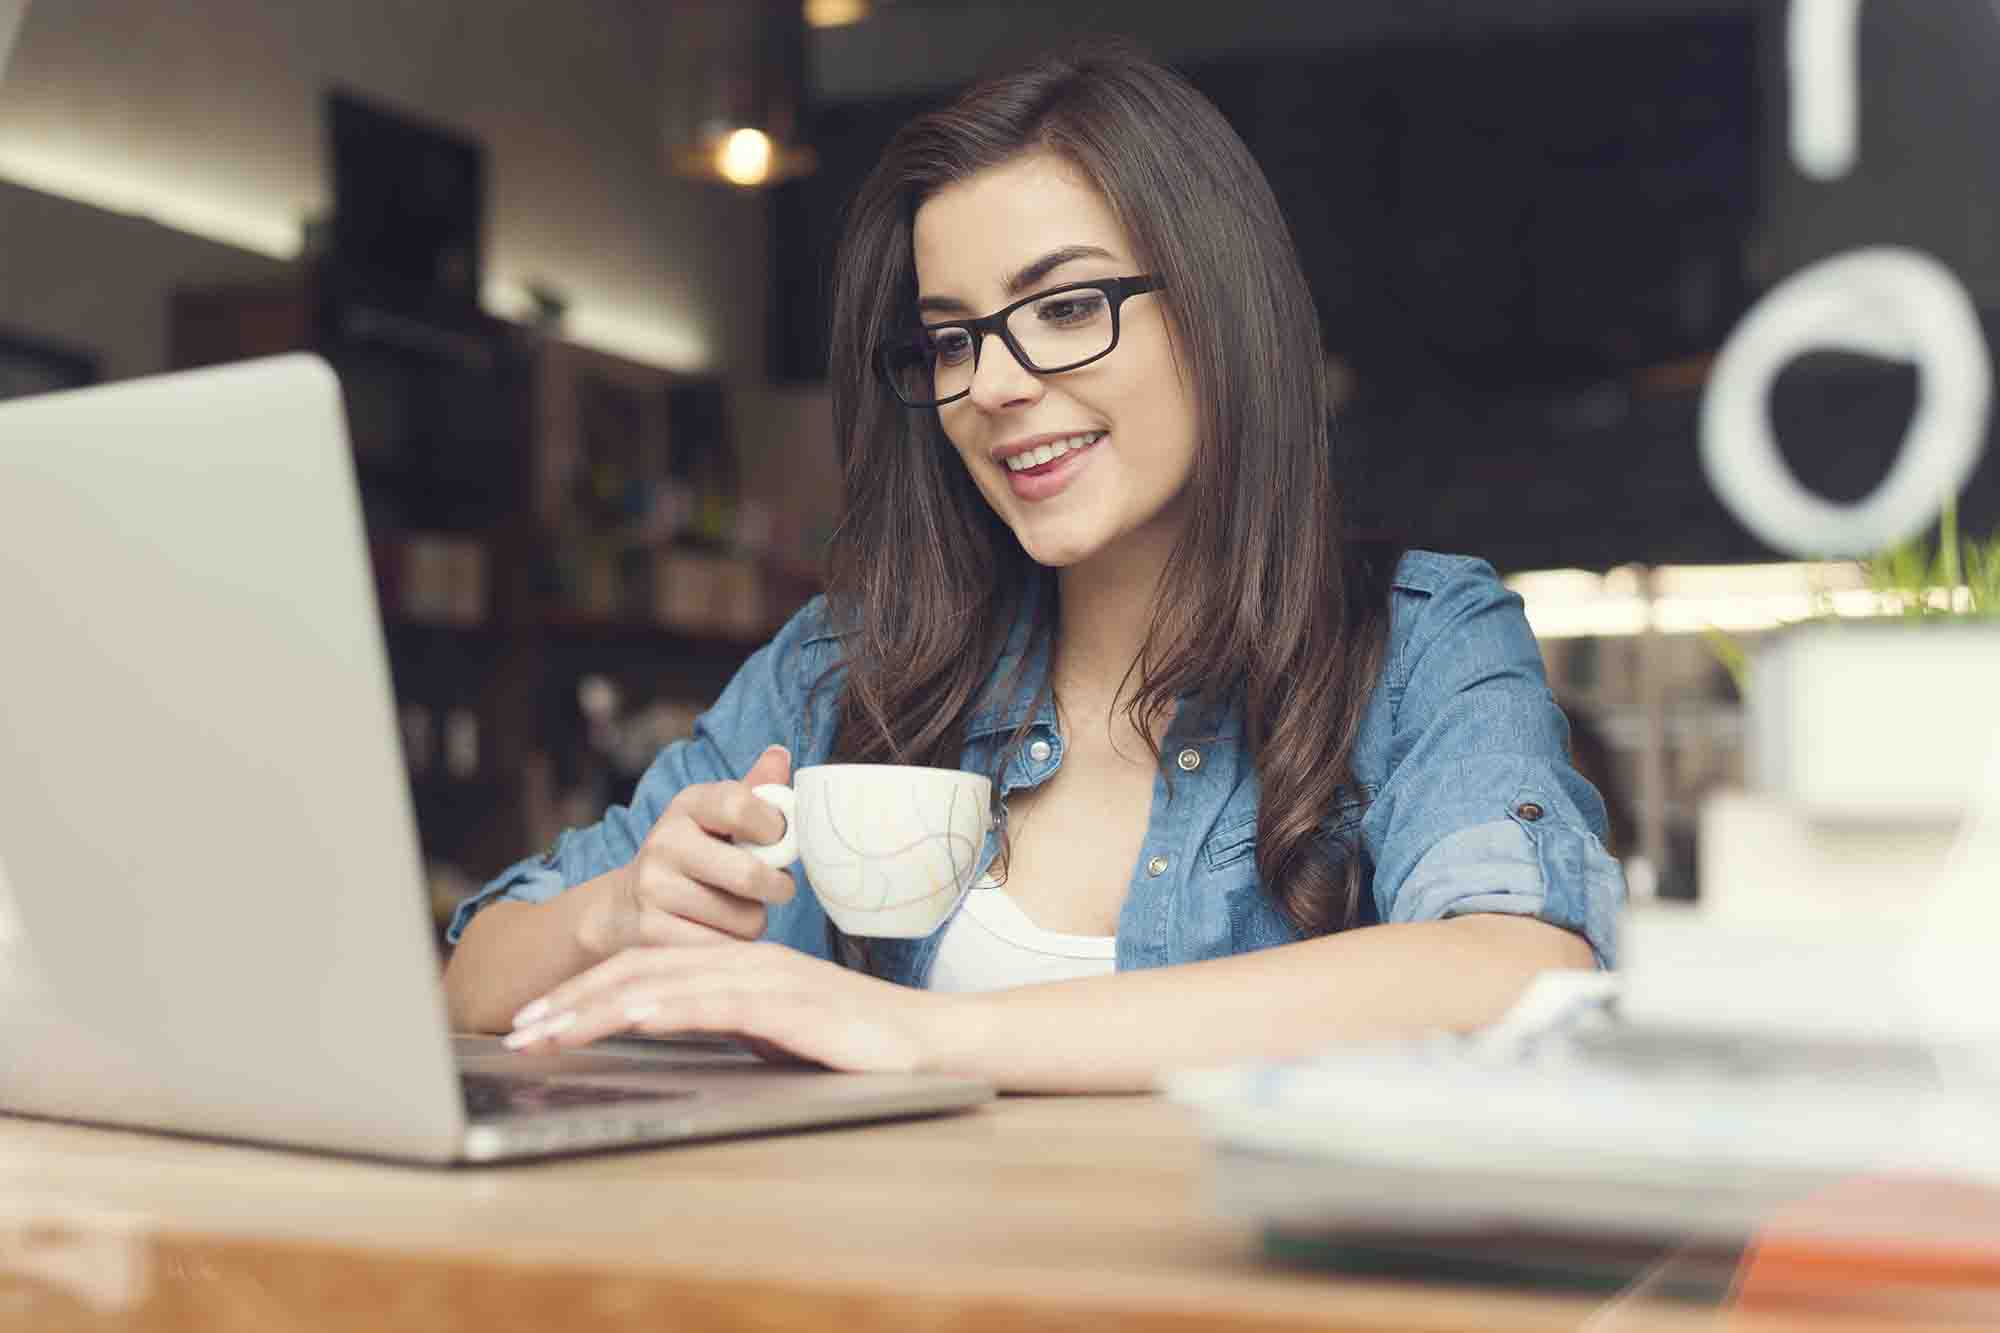 Women using laptop and drinking coffee